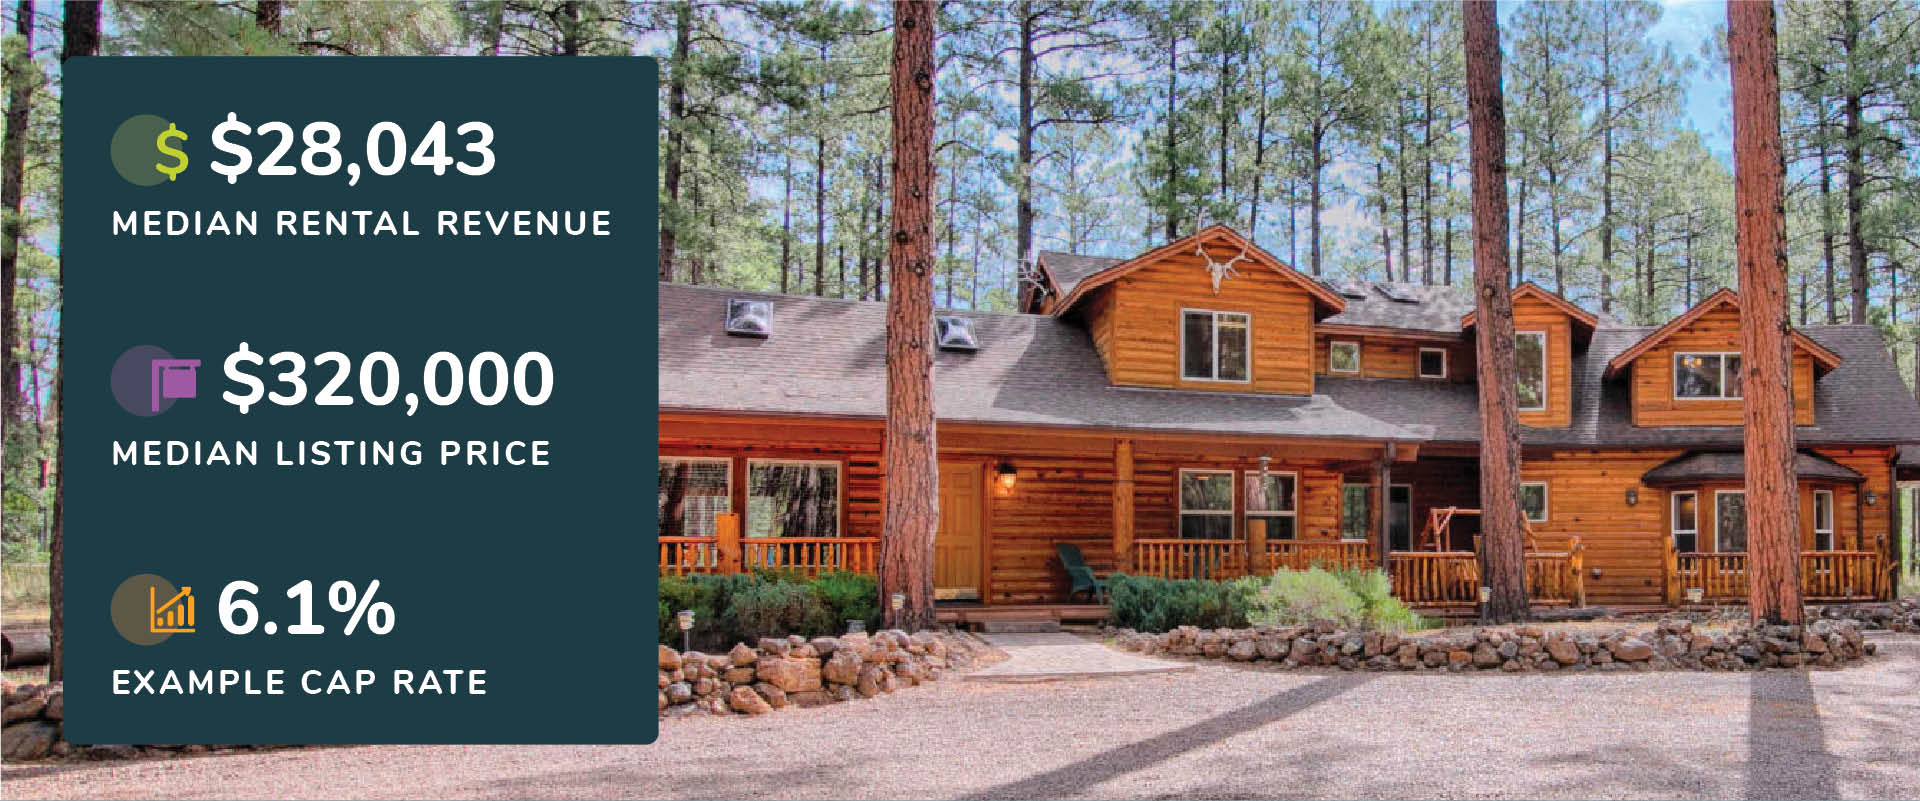 Graphic showing Pinetop-Lakeside, Arizona median rental revenue, listing price, and cap rate with a picture of a log cabin in the woods with tall pine trees.